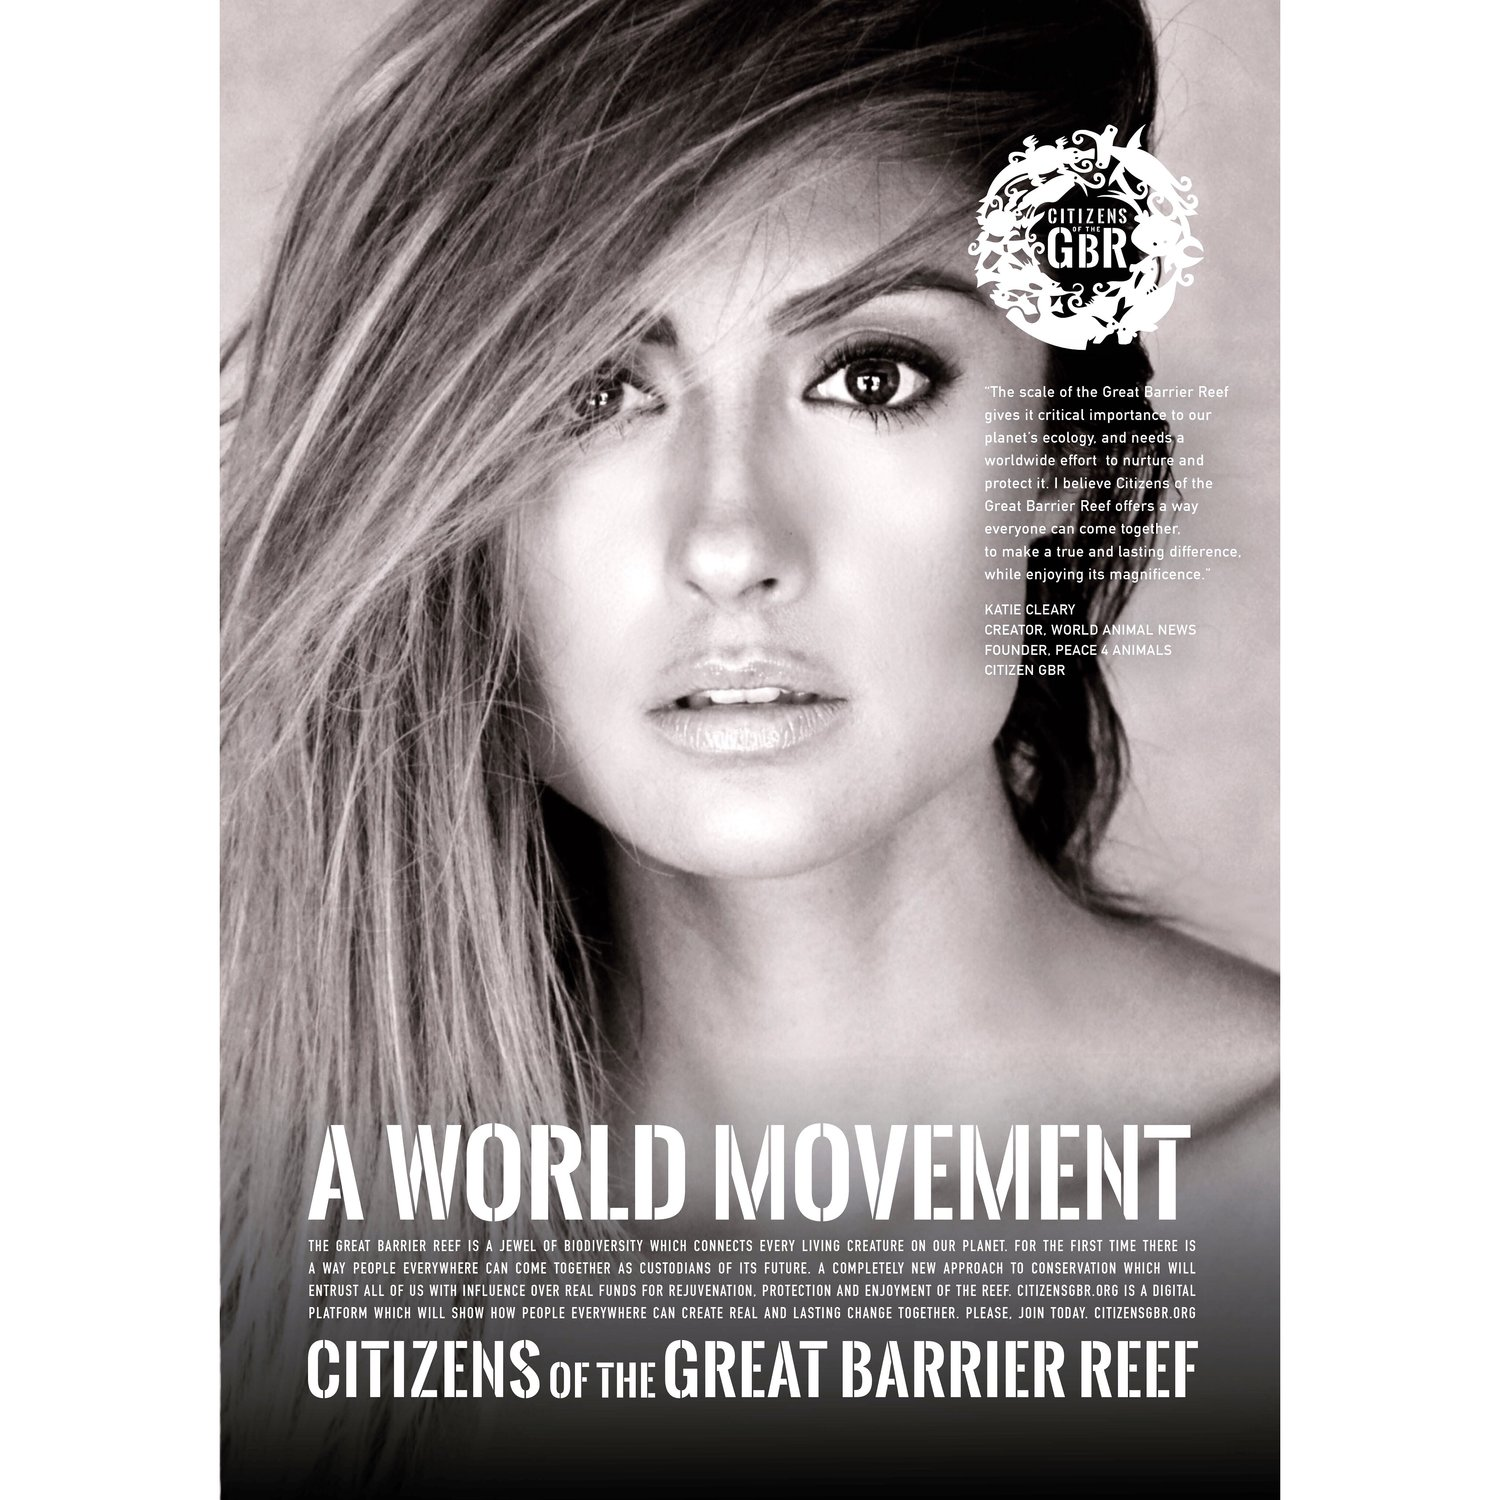 Katie Cleary World Movement